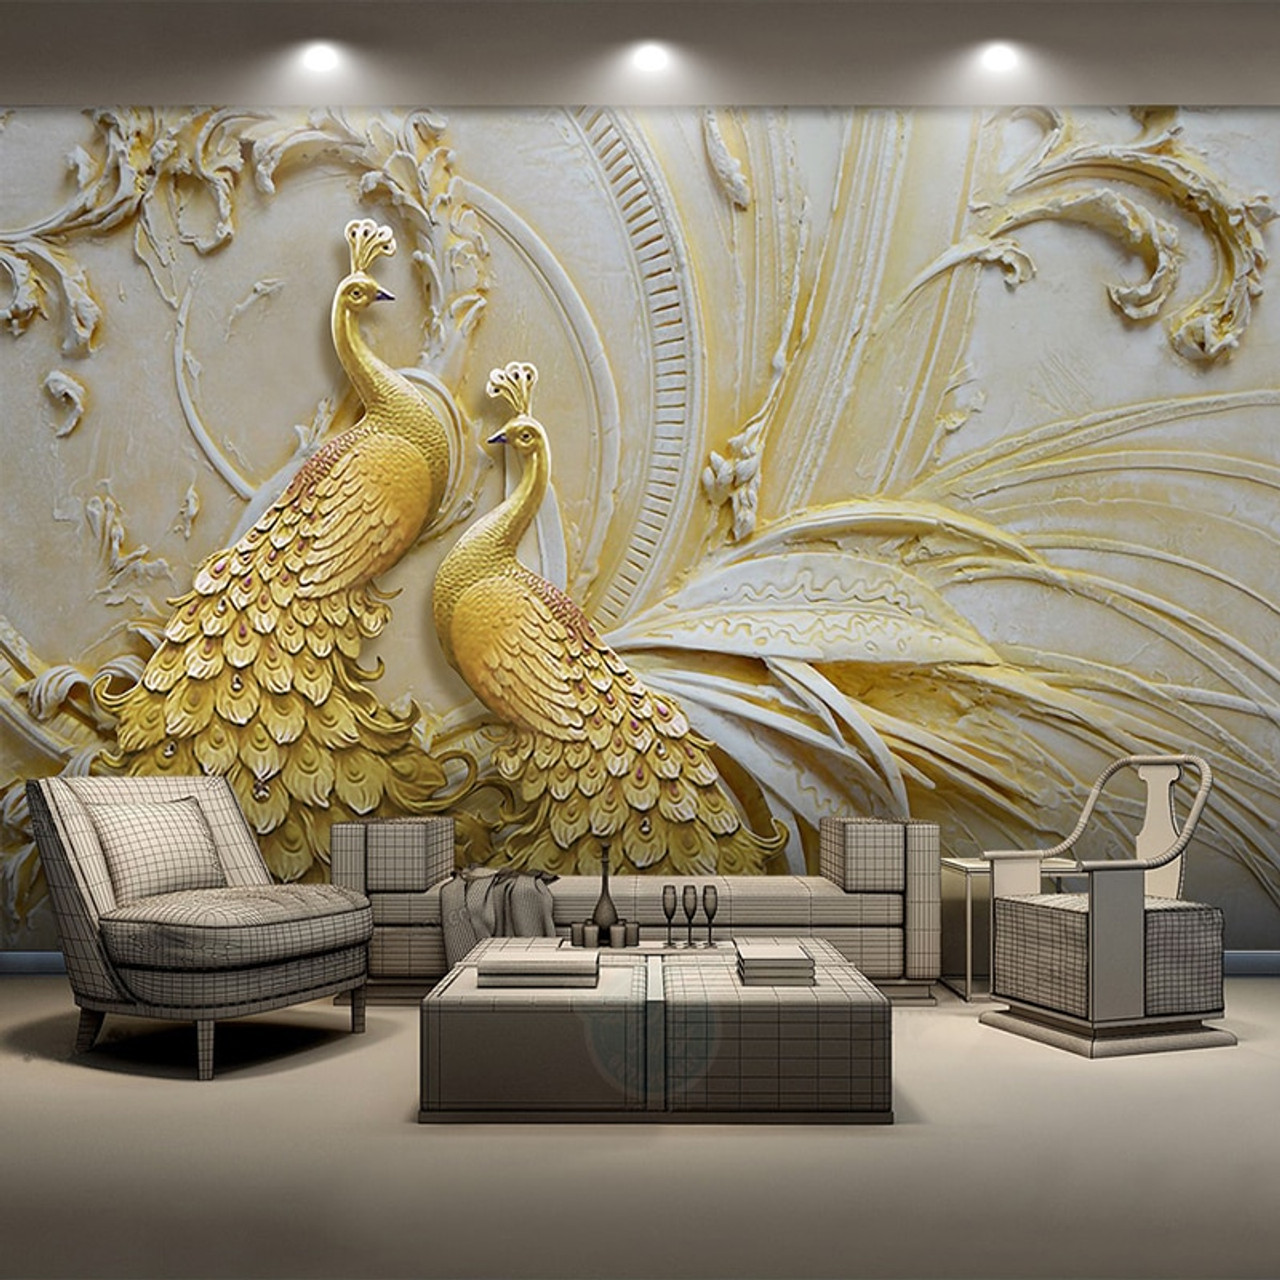 Custom Mural Wallpaper For Walls 3d Stereoscopic Embossed Golden Peacock Background Wall Painting Living Room Bedroom Home Decor Onshopdeals Com,Character Design Excited Poses Reference